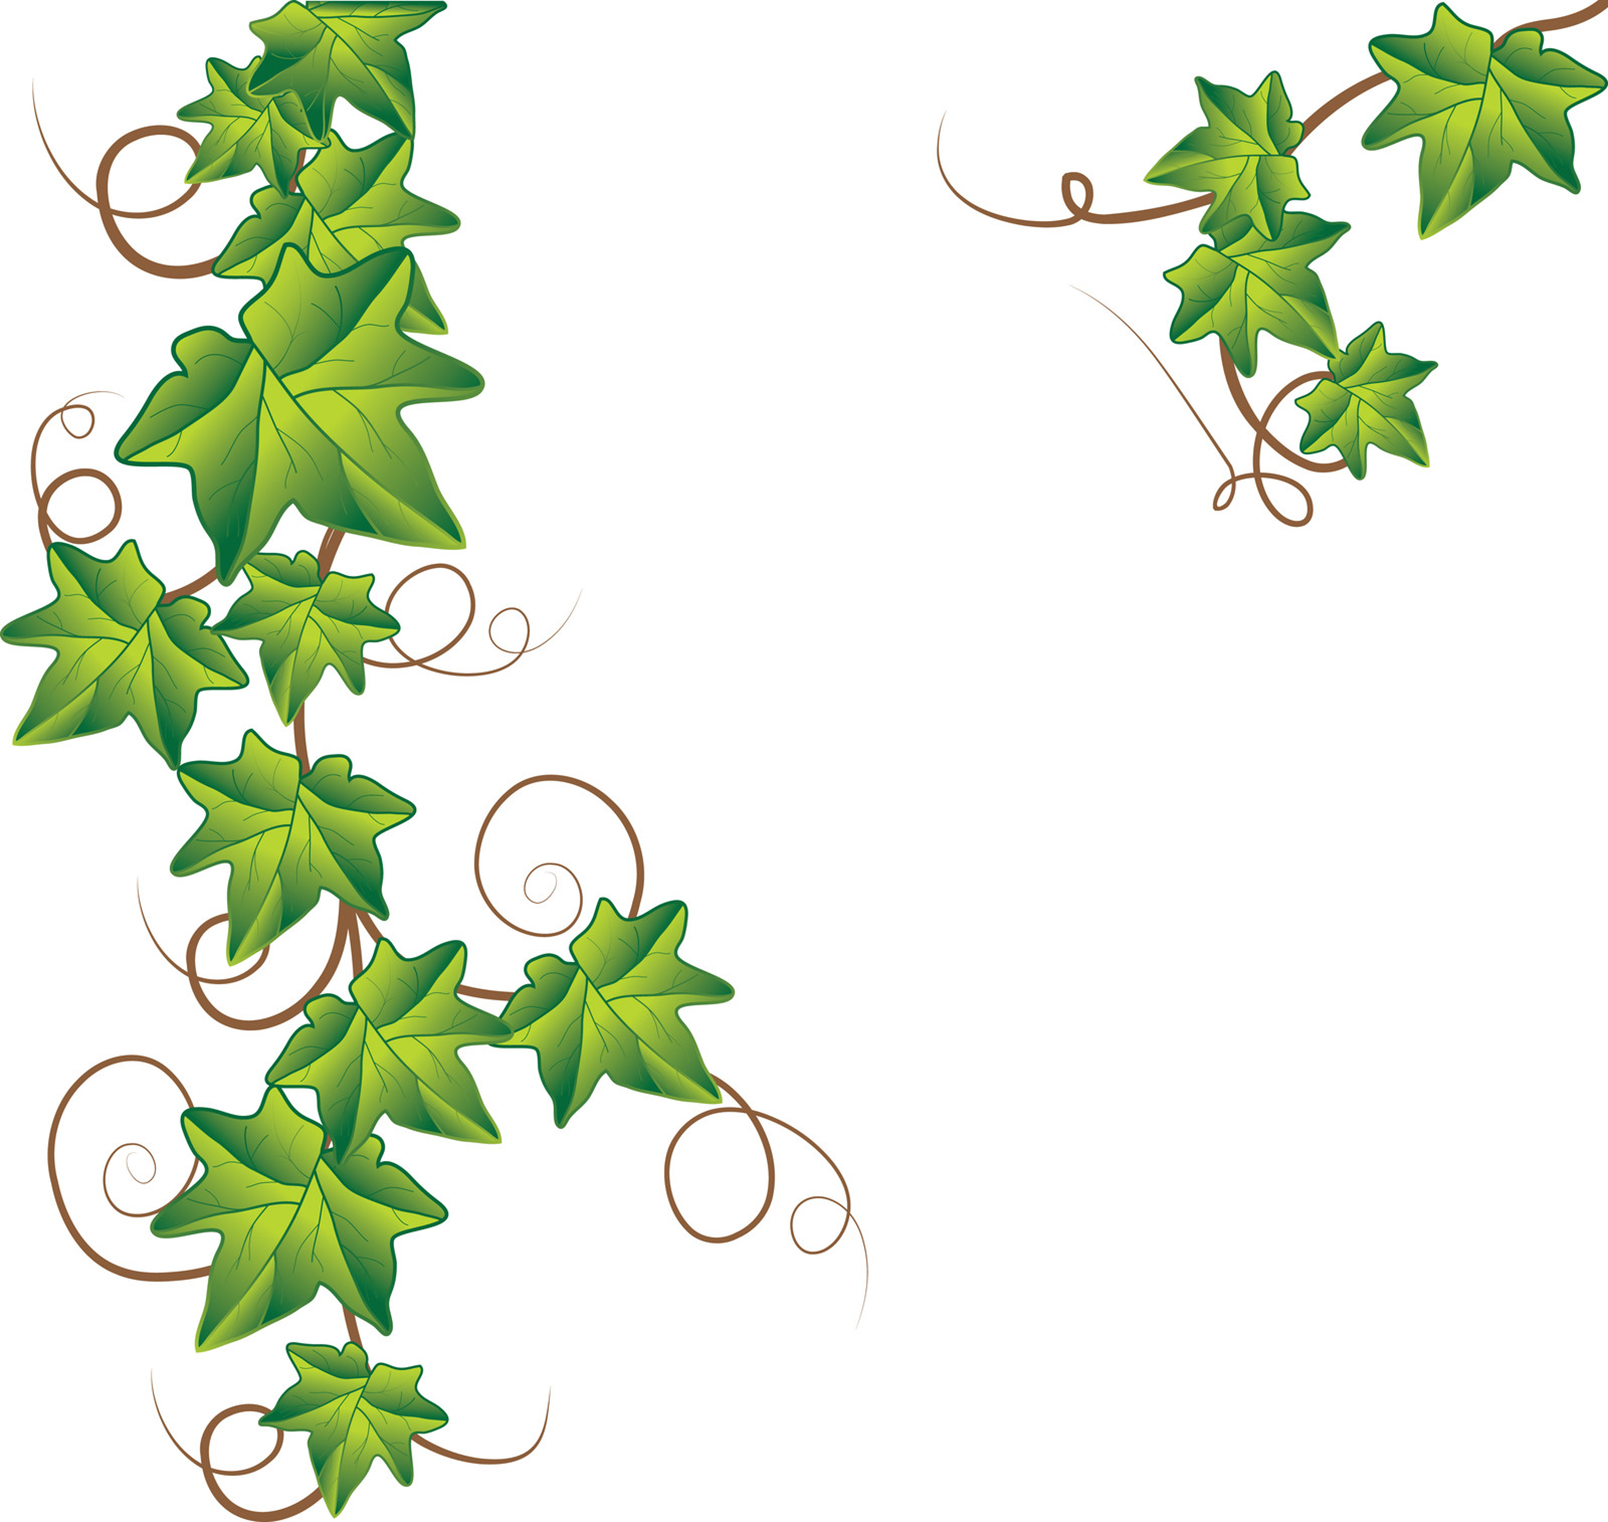 Vines png clipart picture black and white library Jungle Vines Png (+) - Free Download | fourjay.org picture black and white library